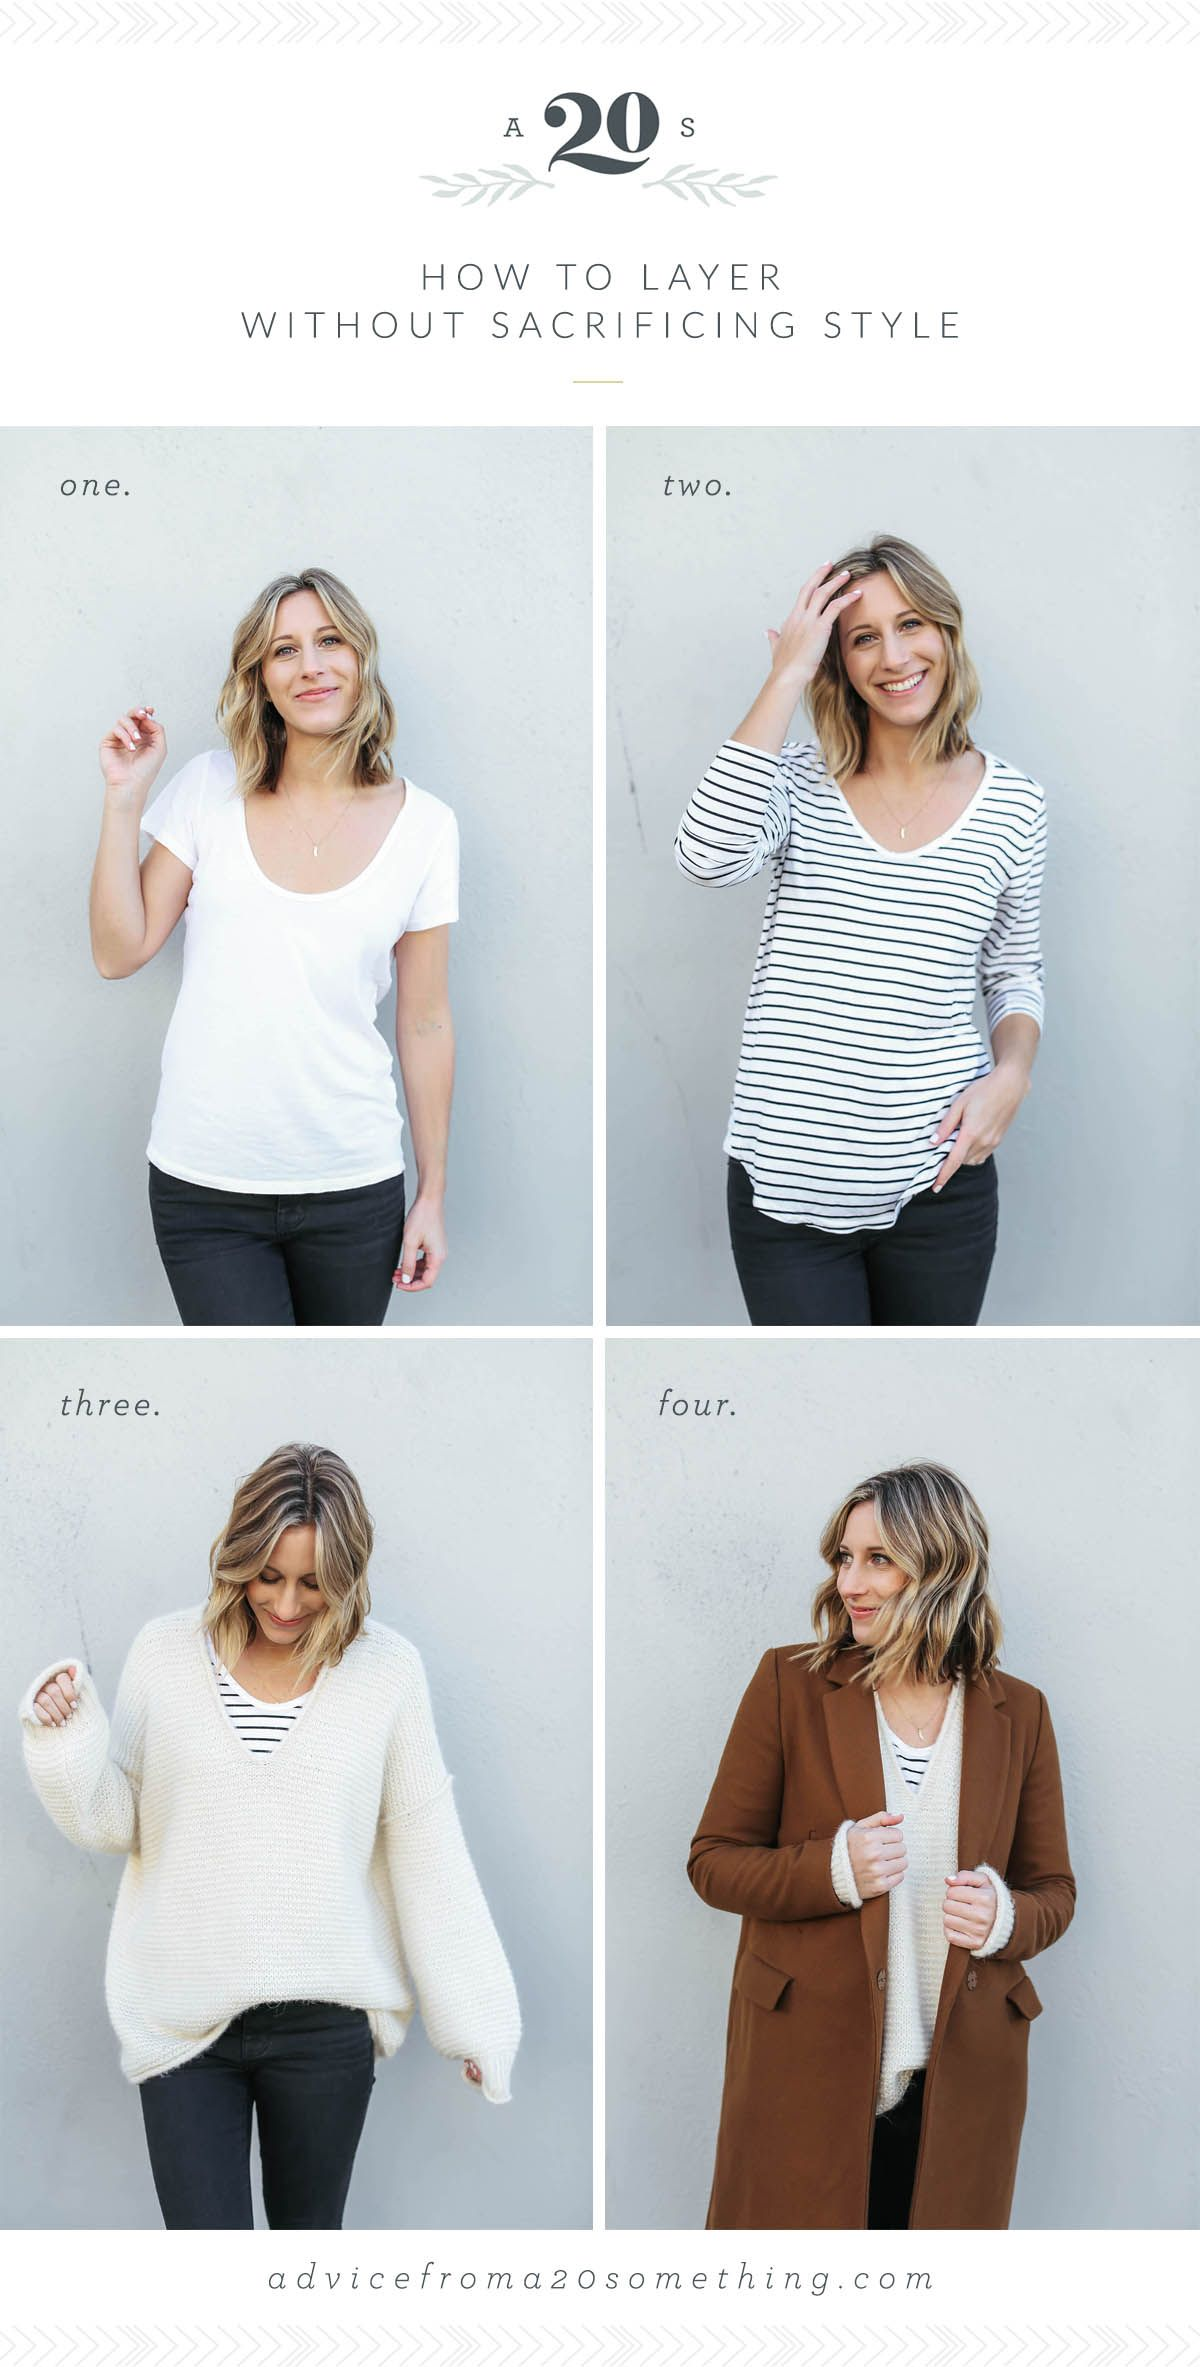 cbee6ded9d26b how to layer without sacrificing style, outfit layering ideas, fall outfit  ideas, winter outfit ideas, striped tee, oversized sweater Free People, ...